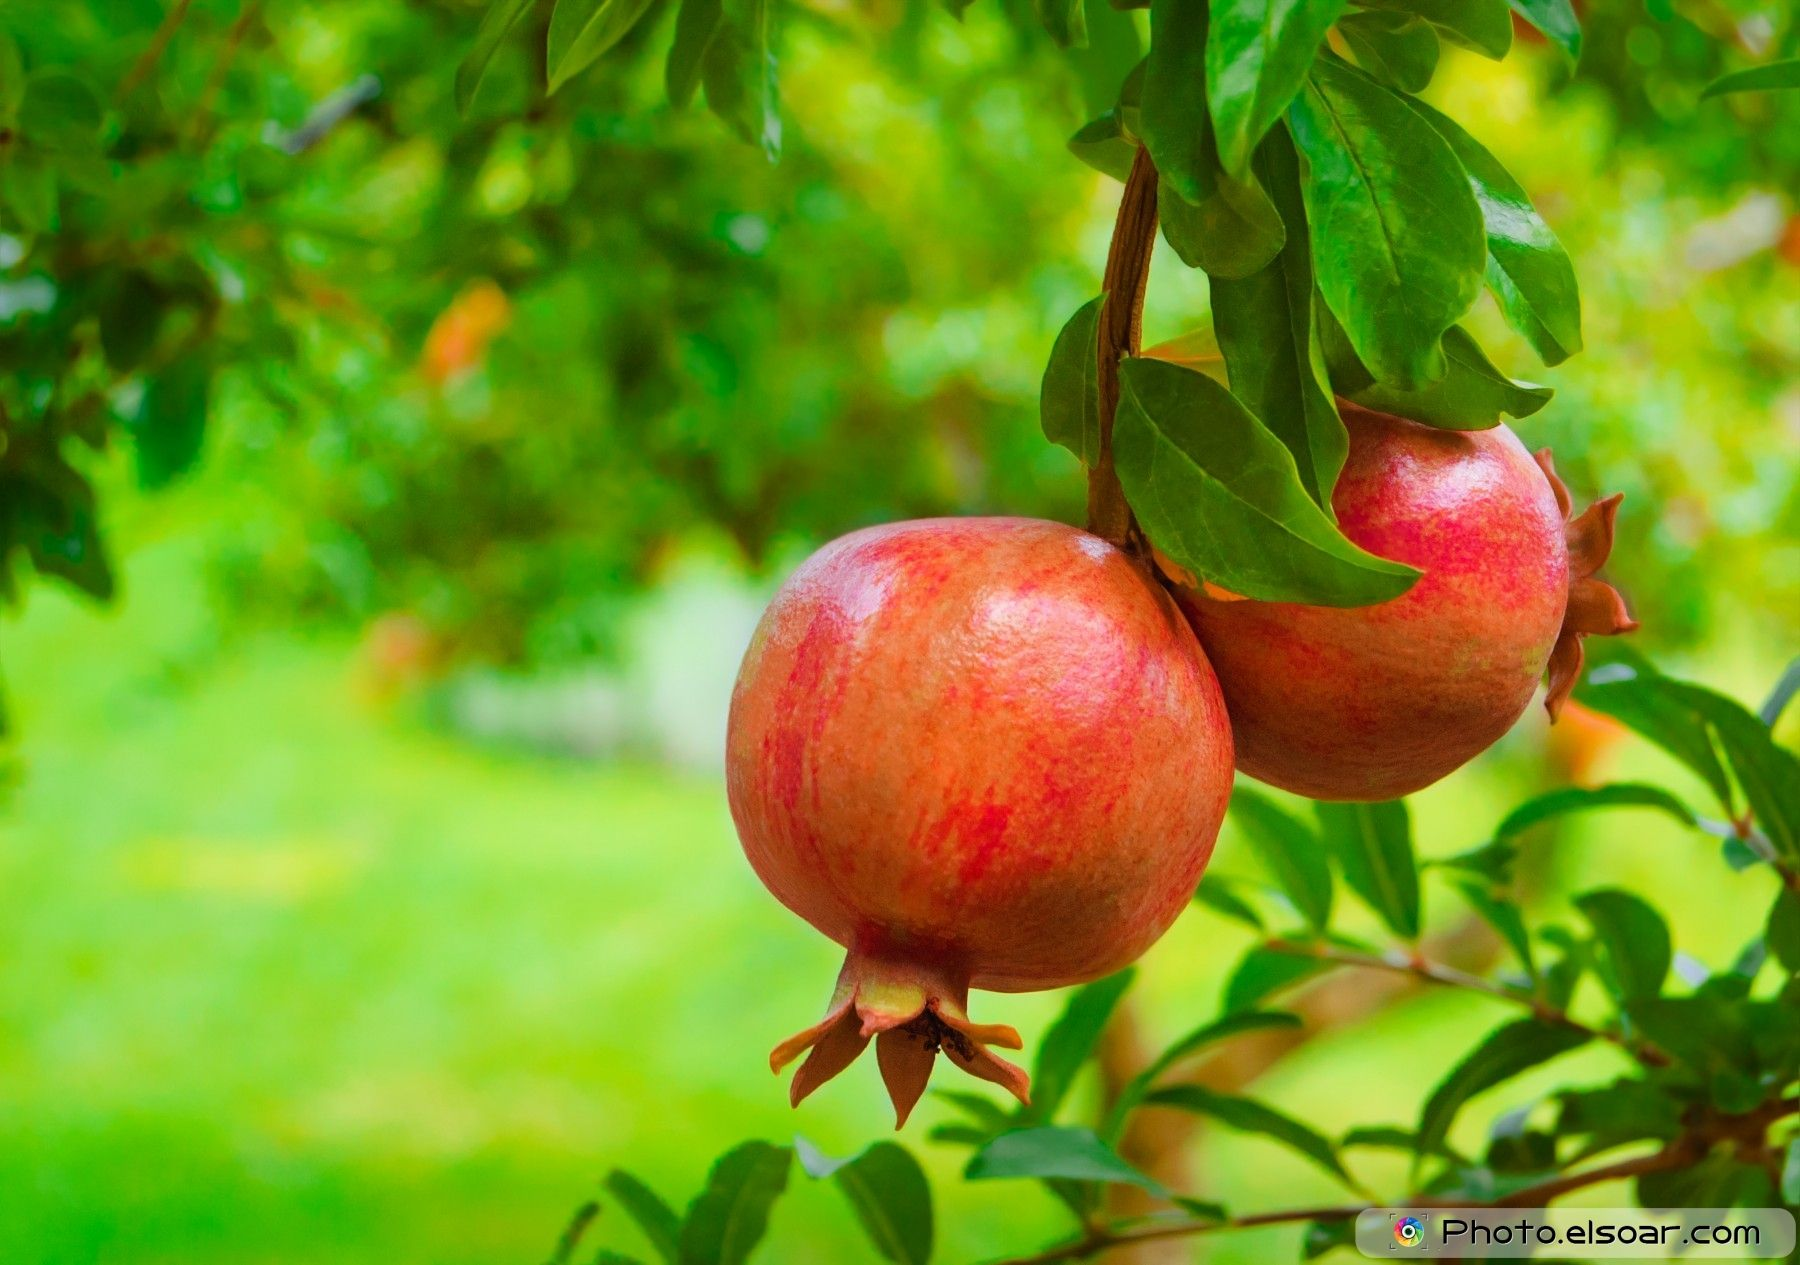 Ripe Colorful Pomegranate Fruit On Tree Branch